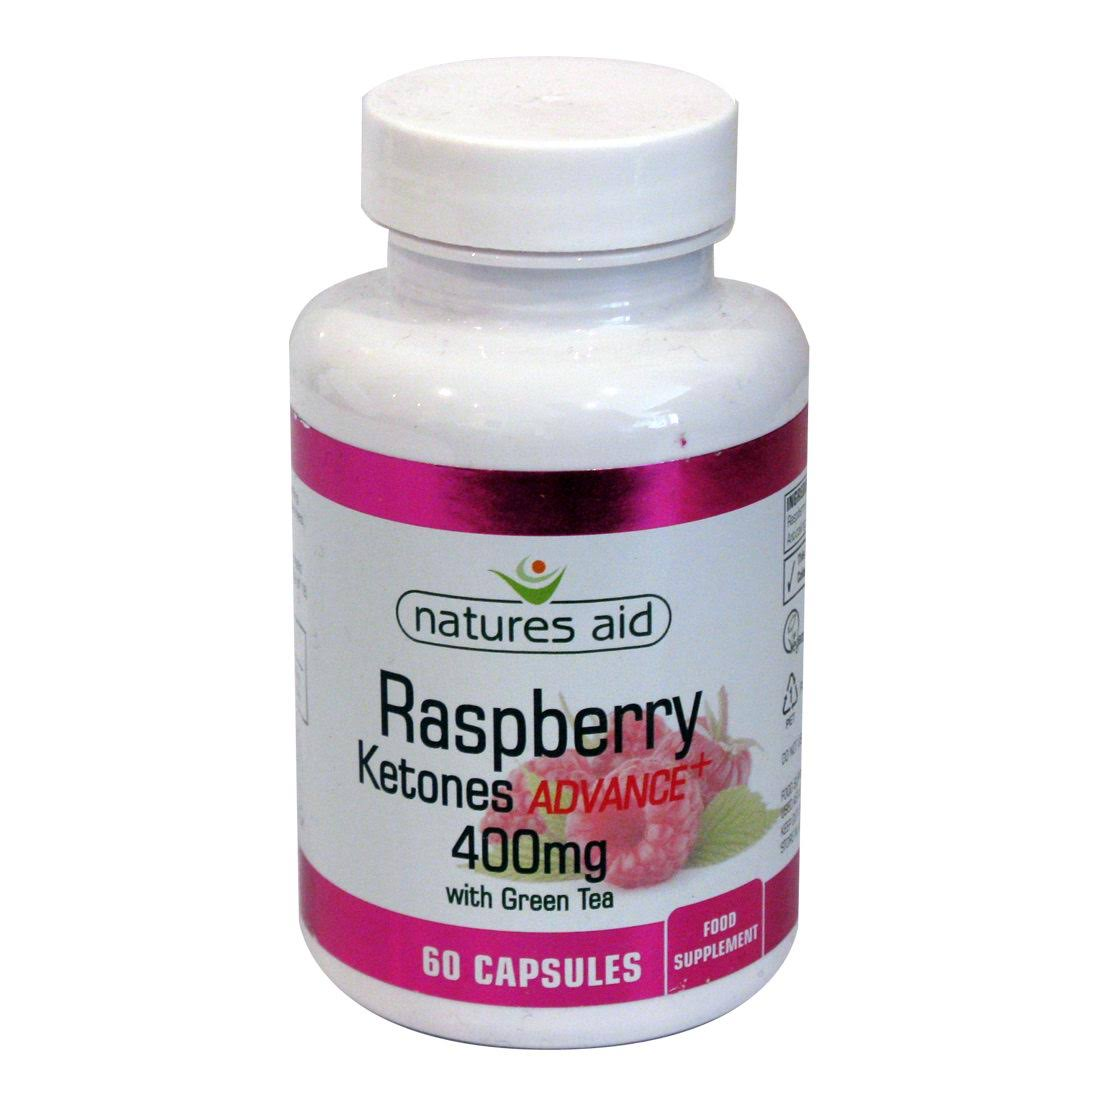 Natures Aid Raspberry Ketones Advance - 60 Capsules